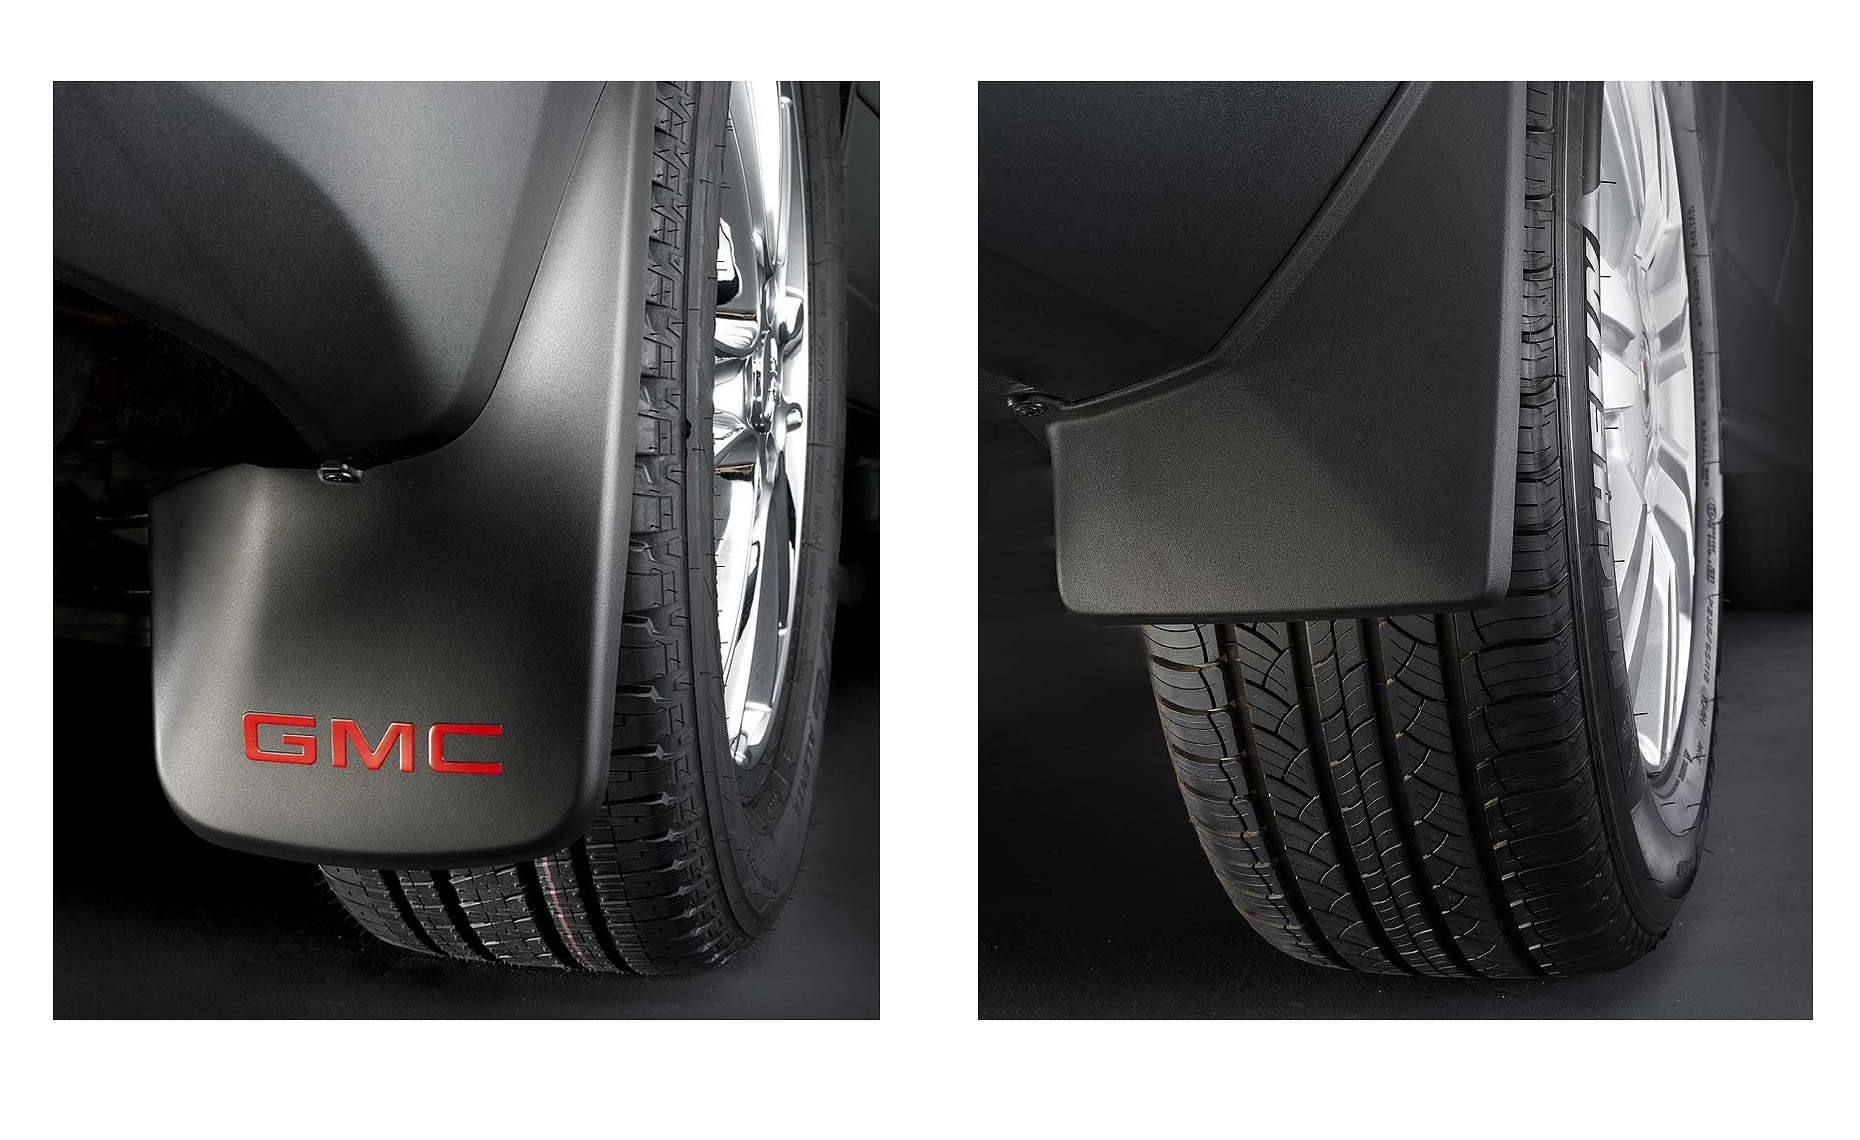 2013 gm accessories-splash guards.jpg